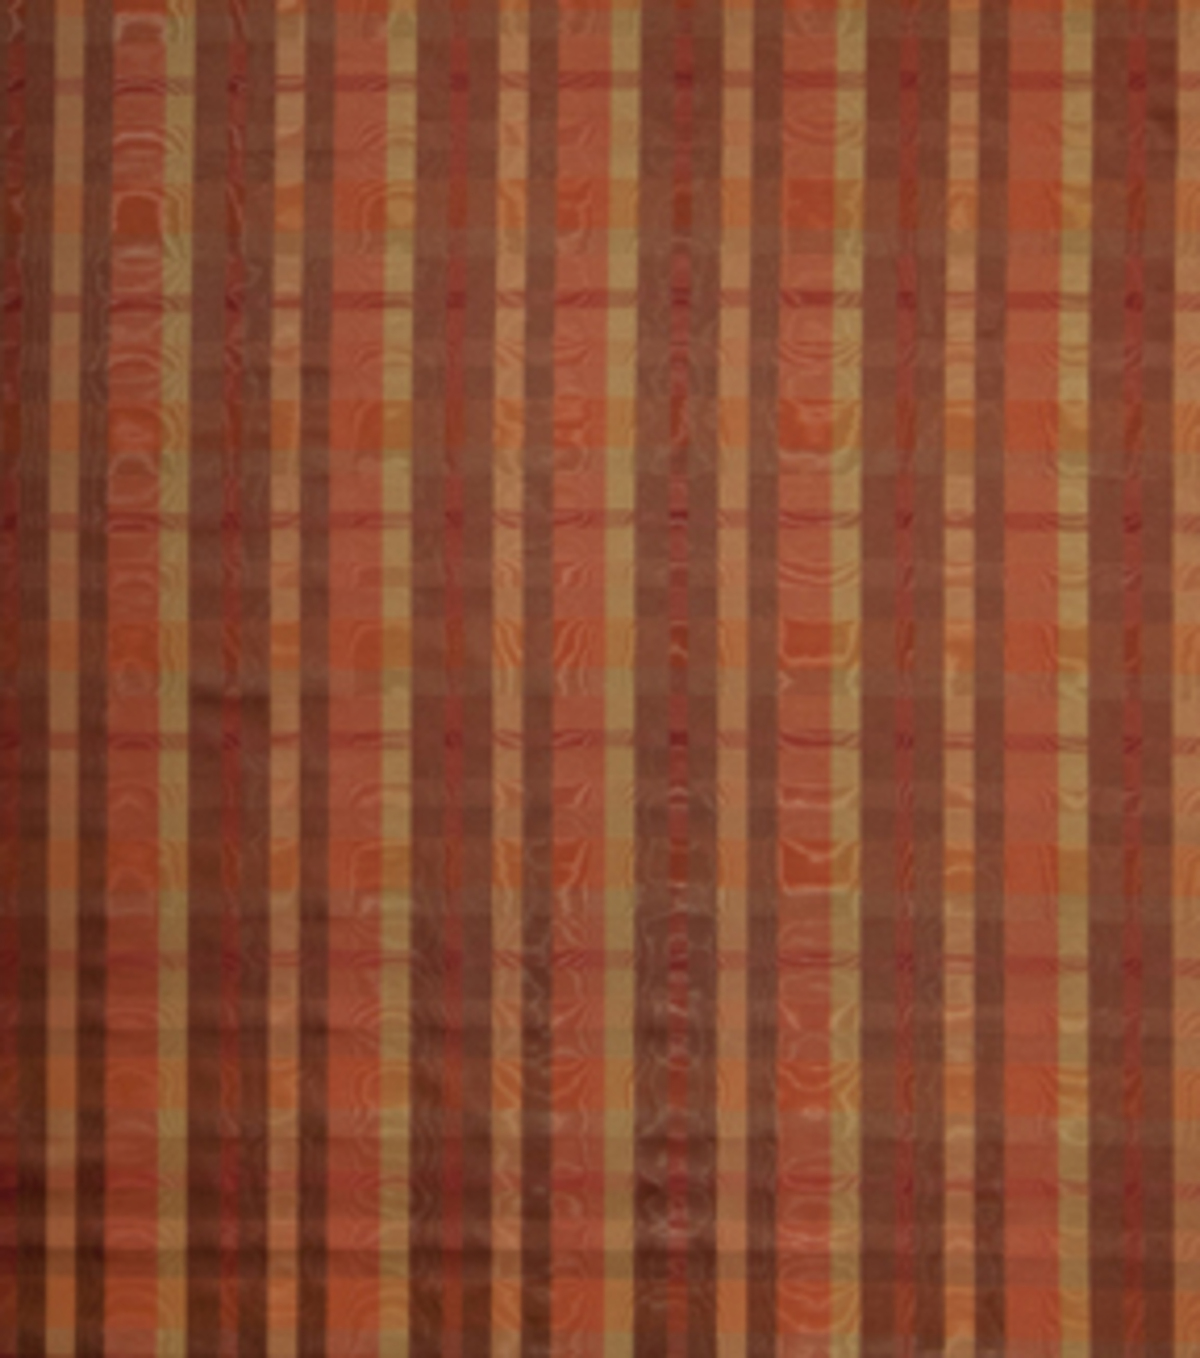 Home Decor 8\u0022x8\u0022 Fabric Swatch-Eaton Square Coincide Terra Cotta